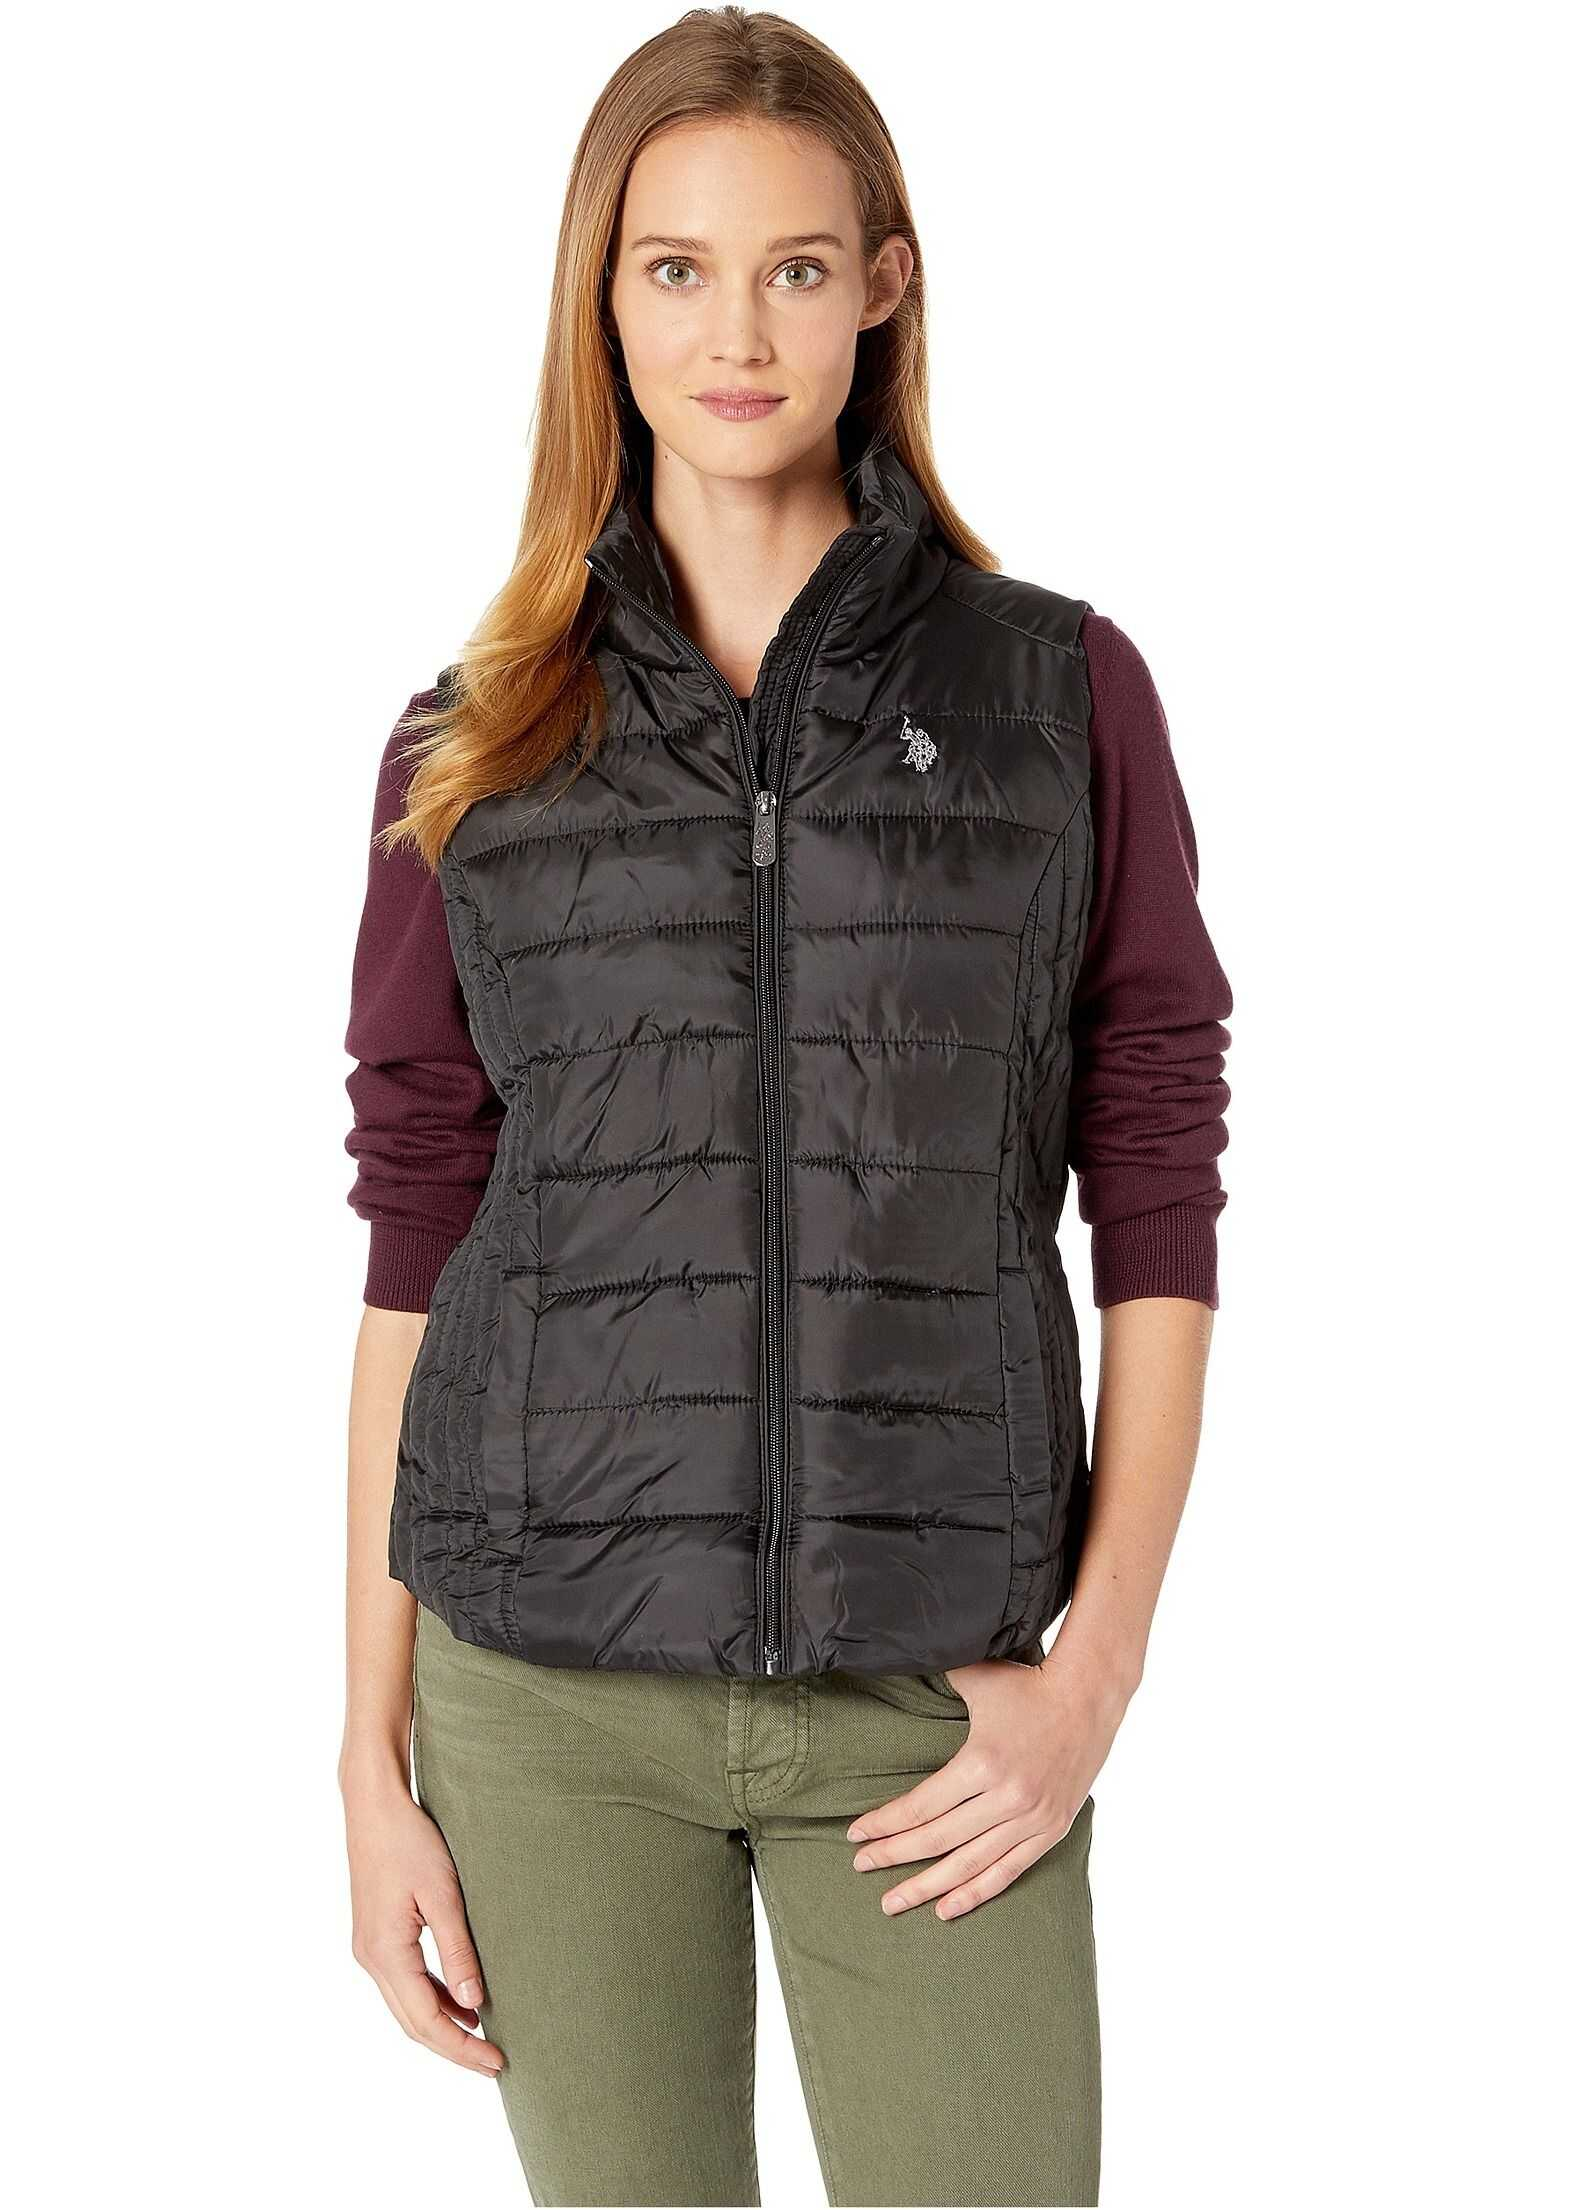 U.S. POLO ASSN. Basic Vest Black